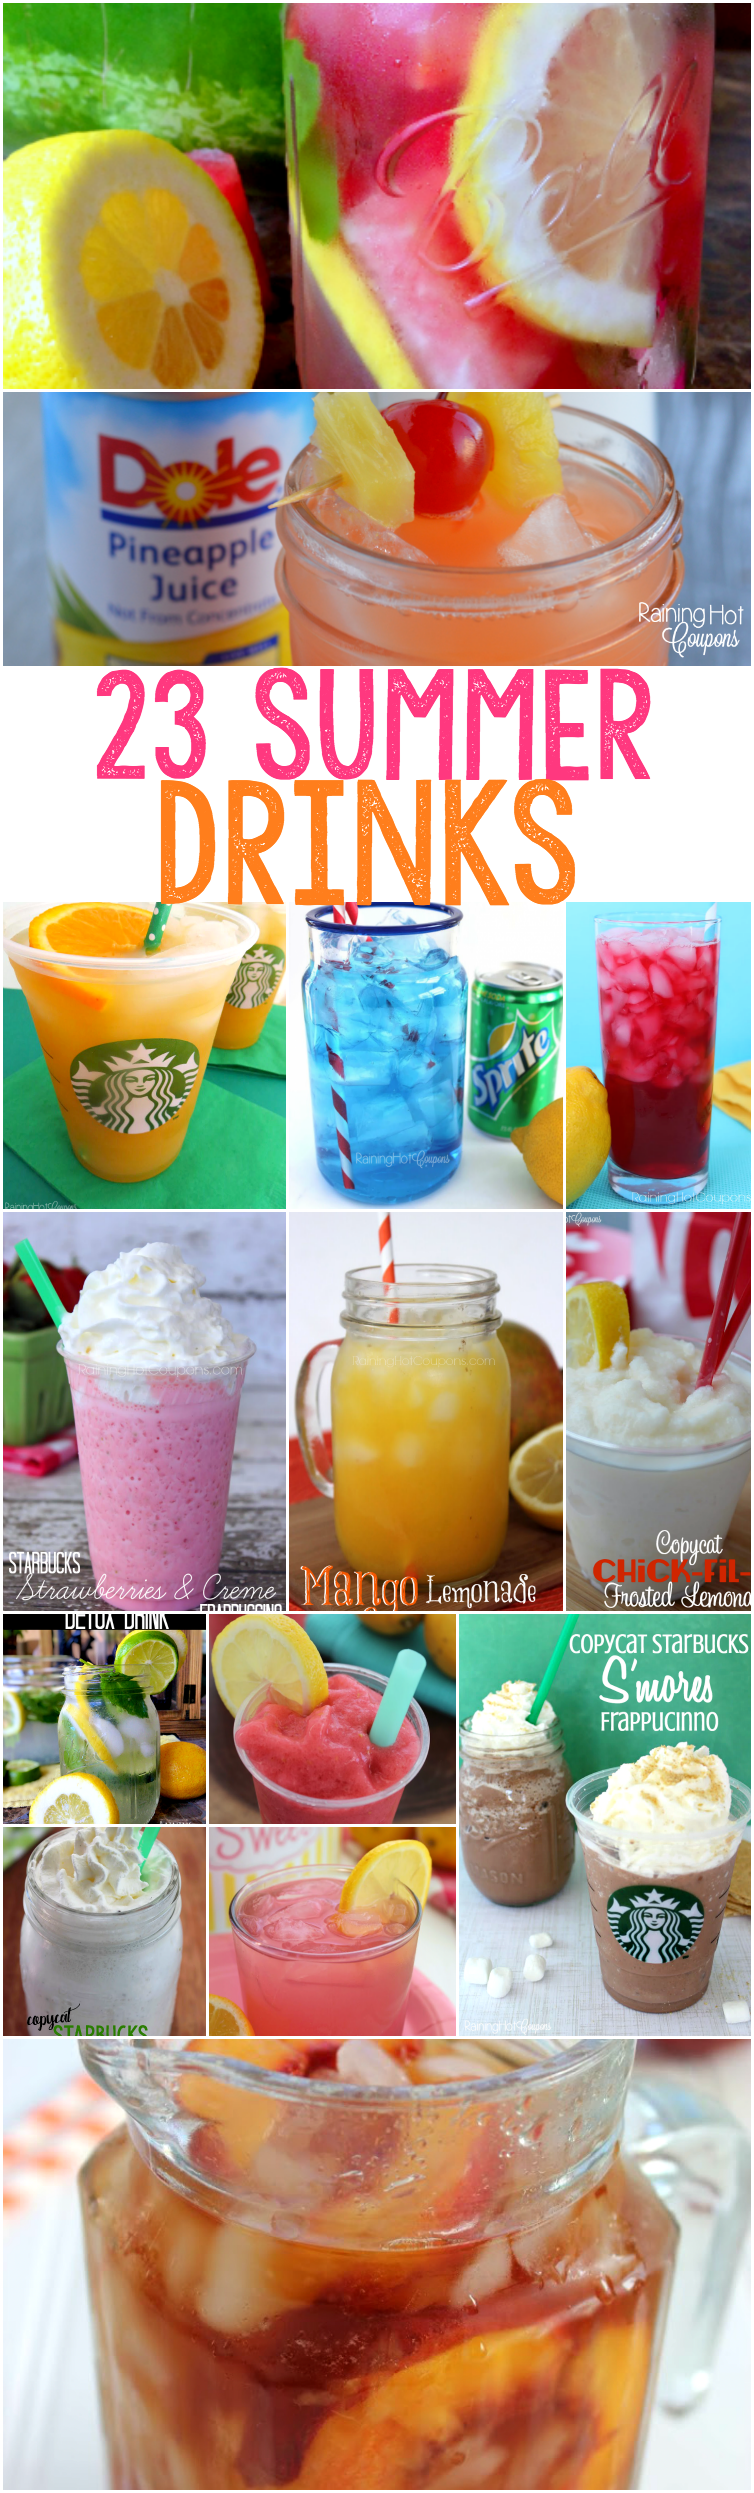 summer drinks food drink recipes refreshing party sonic diy easy cold restaurant fun garden alcoholic olive raininghotcoupons chili dinner yummy